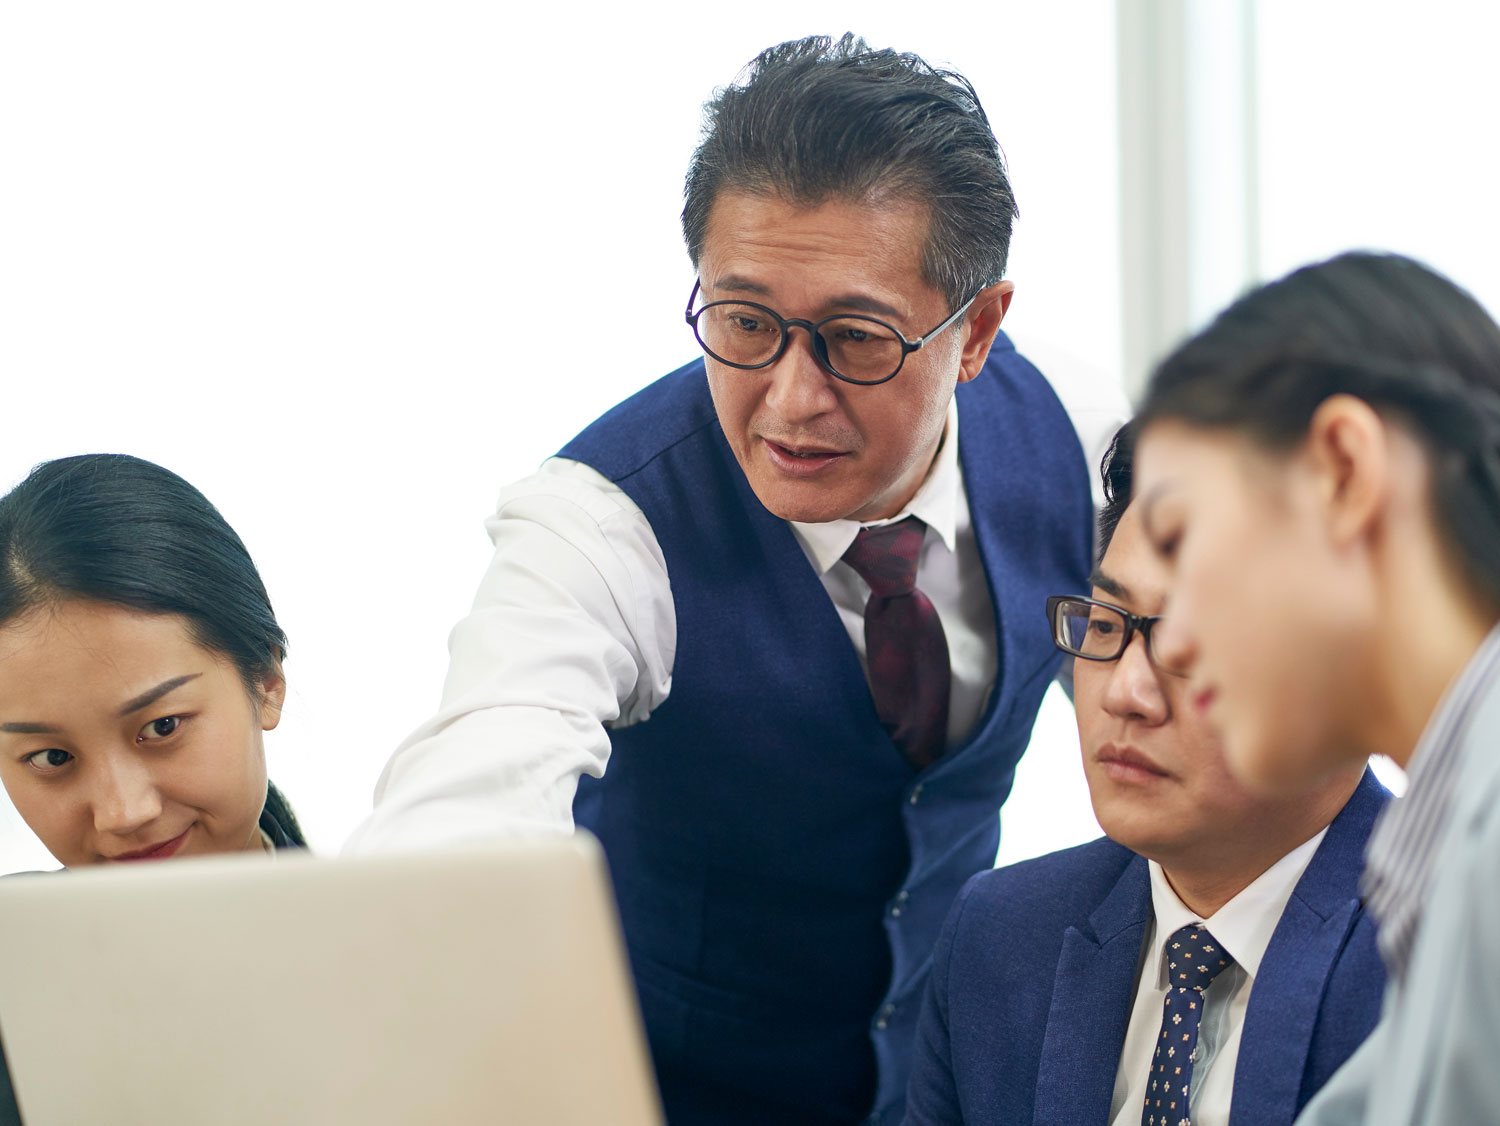 Chinese ecommerce decision made by business executives